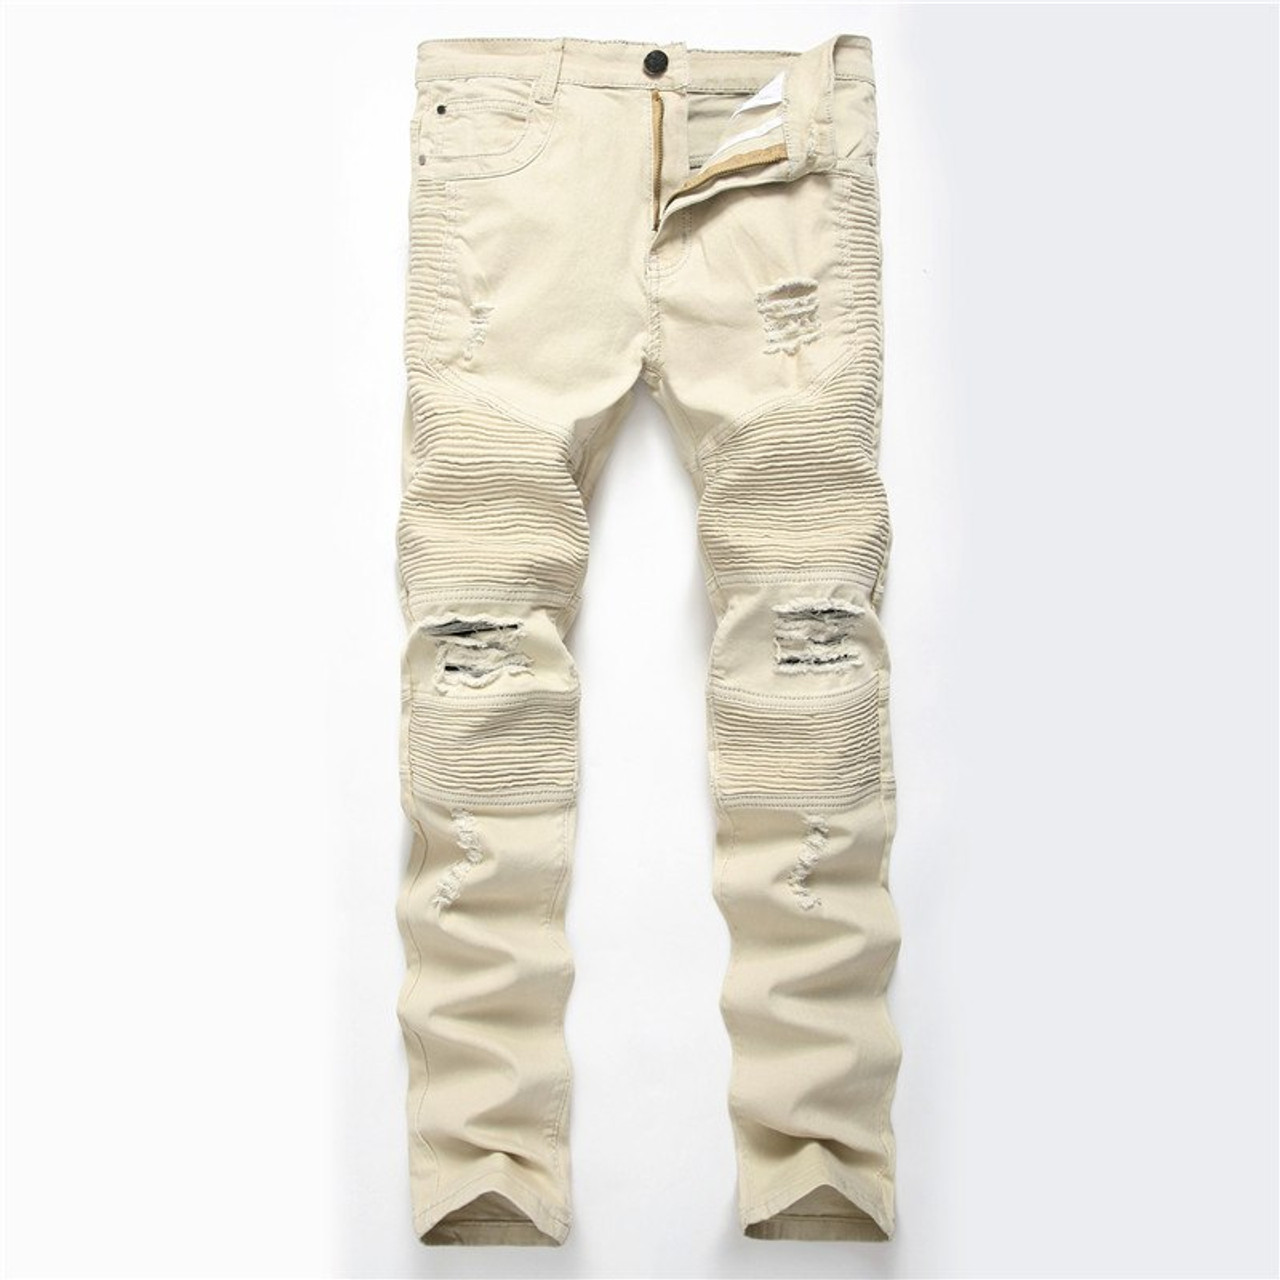 9bc57c0ac9 ... Dropshipping Men Washed Hole Ripped Biker Jeans New Jeans Men Fashion  Casual Slim Fit Hip Hop ...